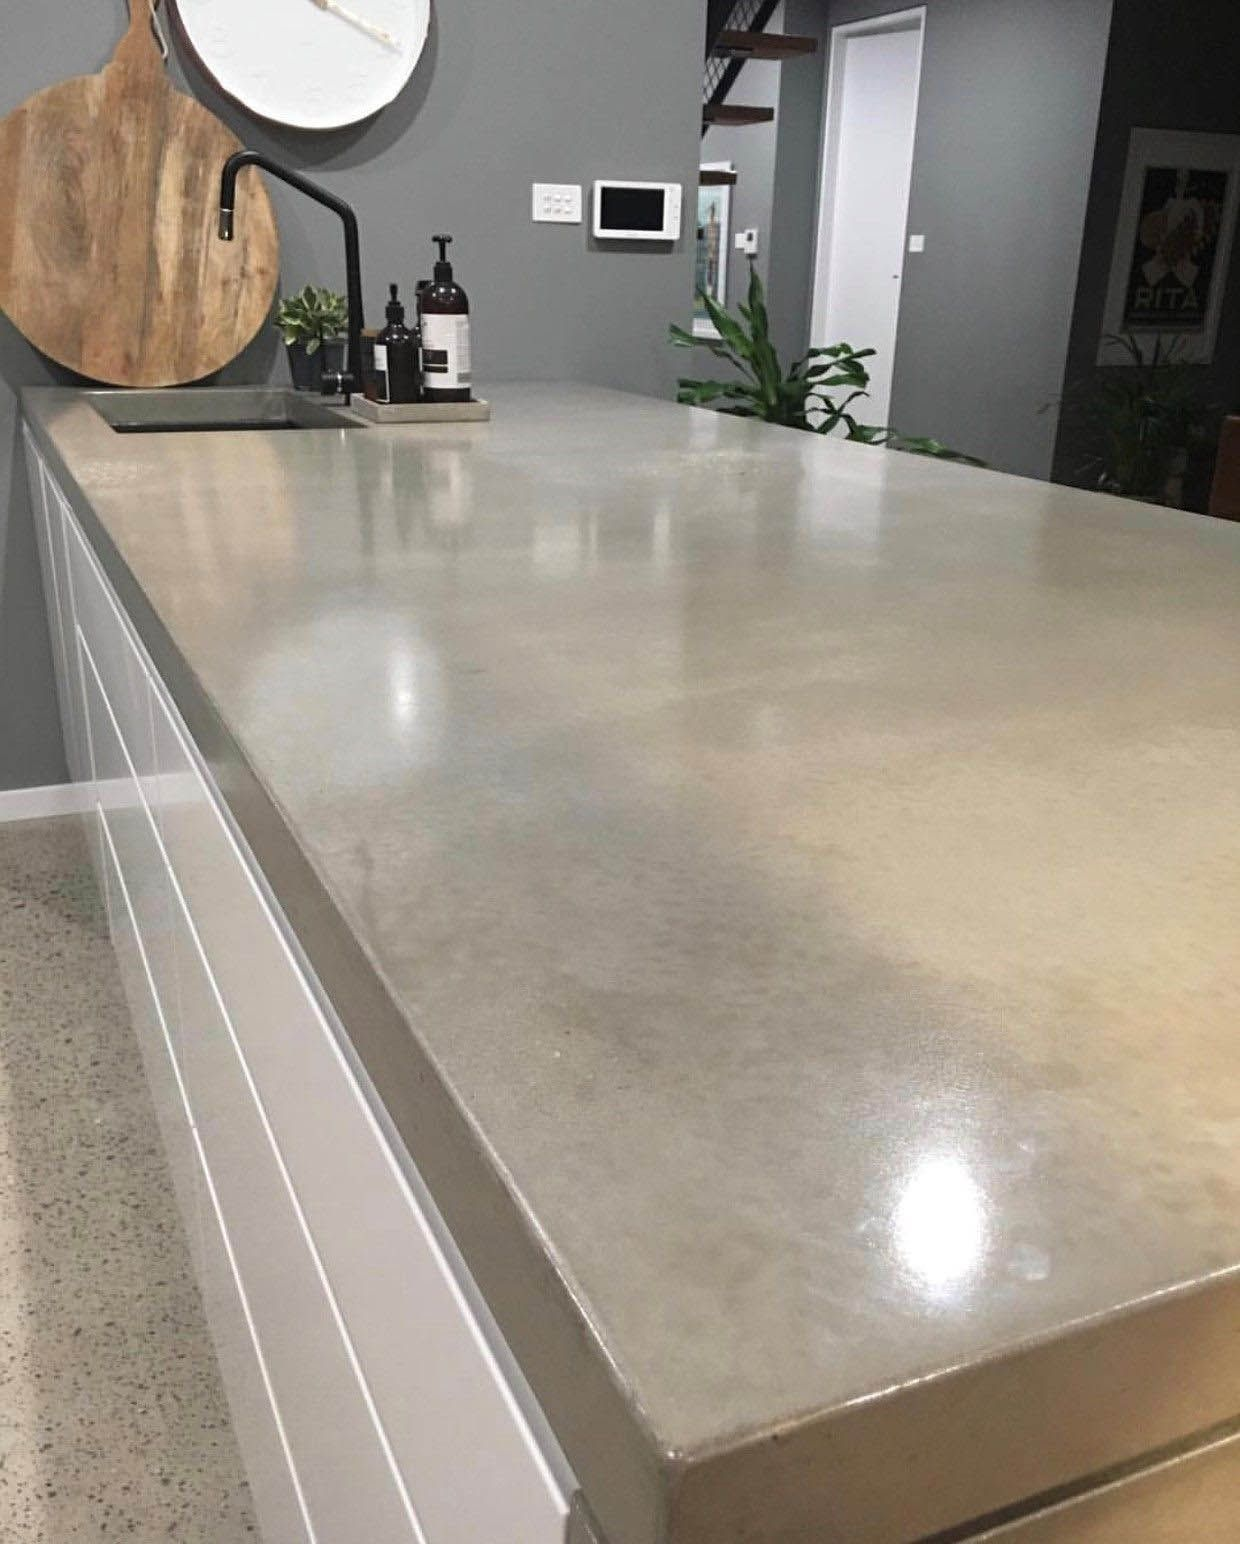 Concrete Countertops Advantages And Disadvantages In 2020